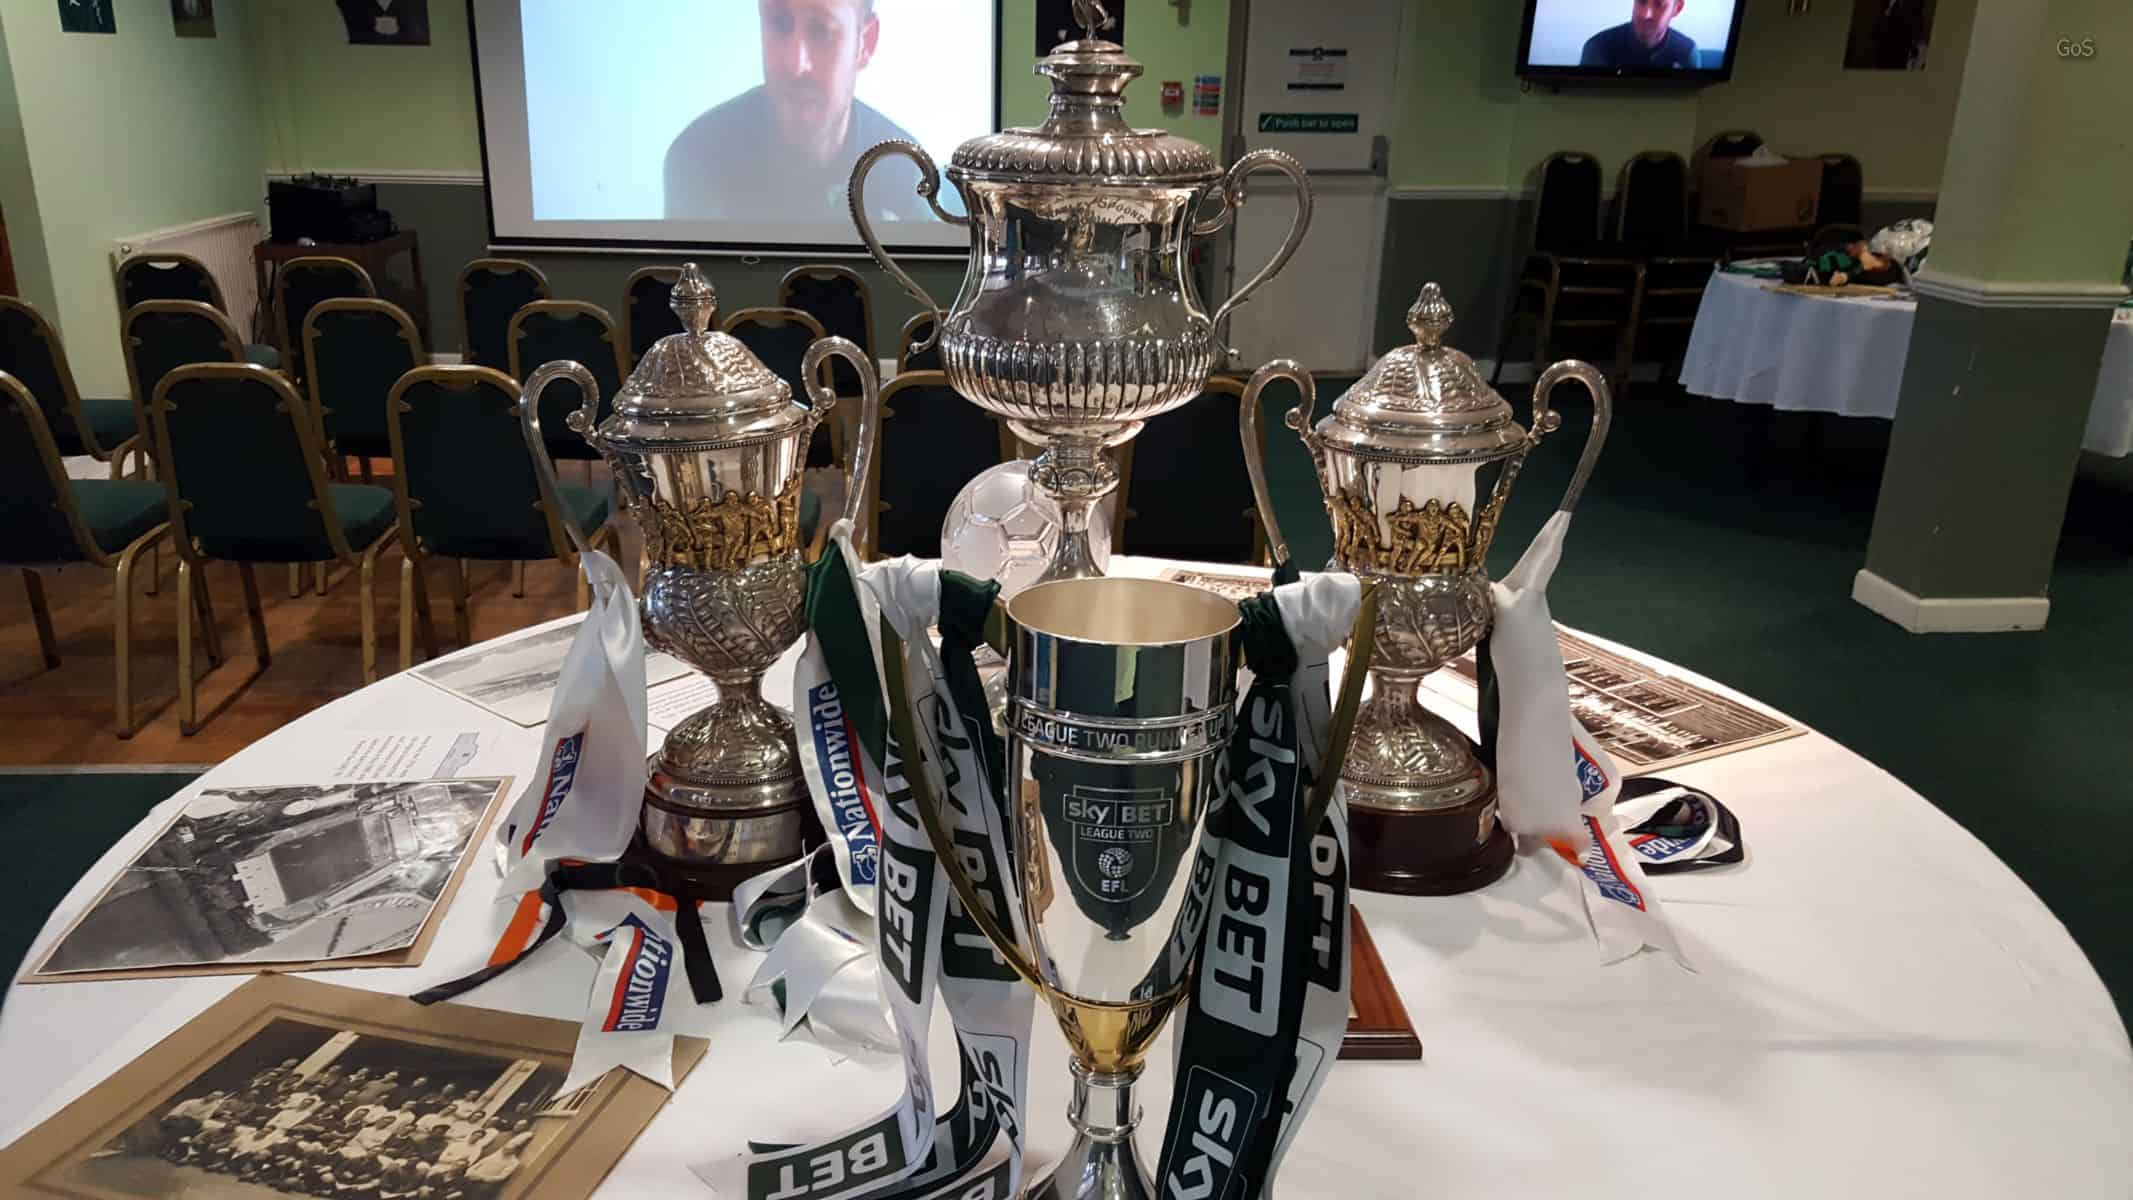 The 2016-17 League Two Runners Up Trophy with the 2001-02 and 2003-04 Winners' Trophy to the Left and right. Behind is the Stanley Spooner Memorial Cup, a Devon F.A. trophy.